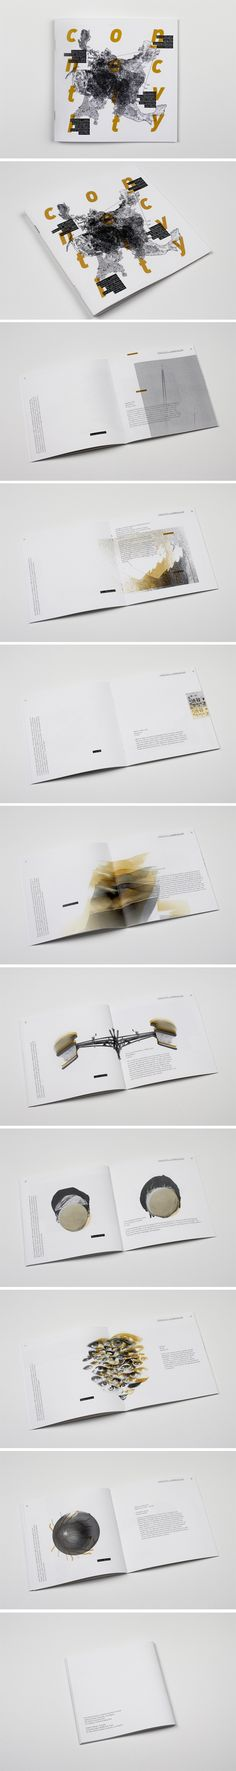 Catalogue Design By Ceng Ma via www.be.net/cengma